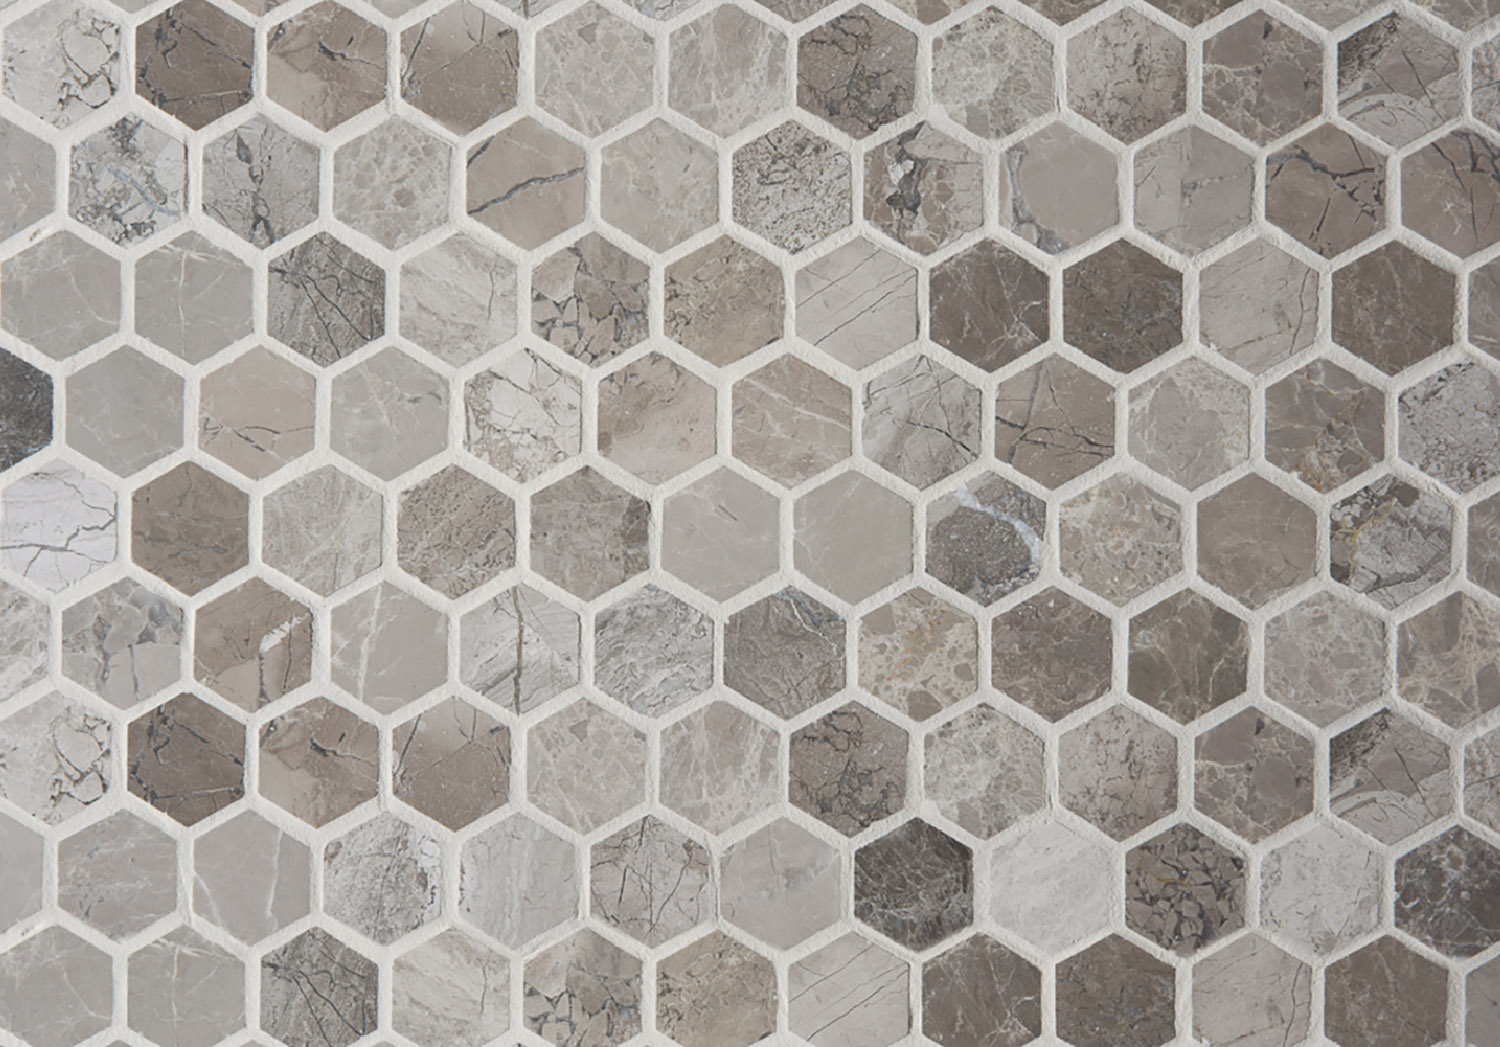 Anzer Grey Polished Marble Mosaic Tiles | Floors of Stone